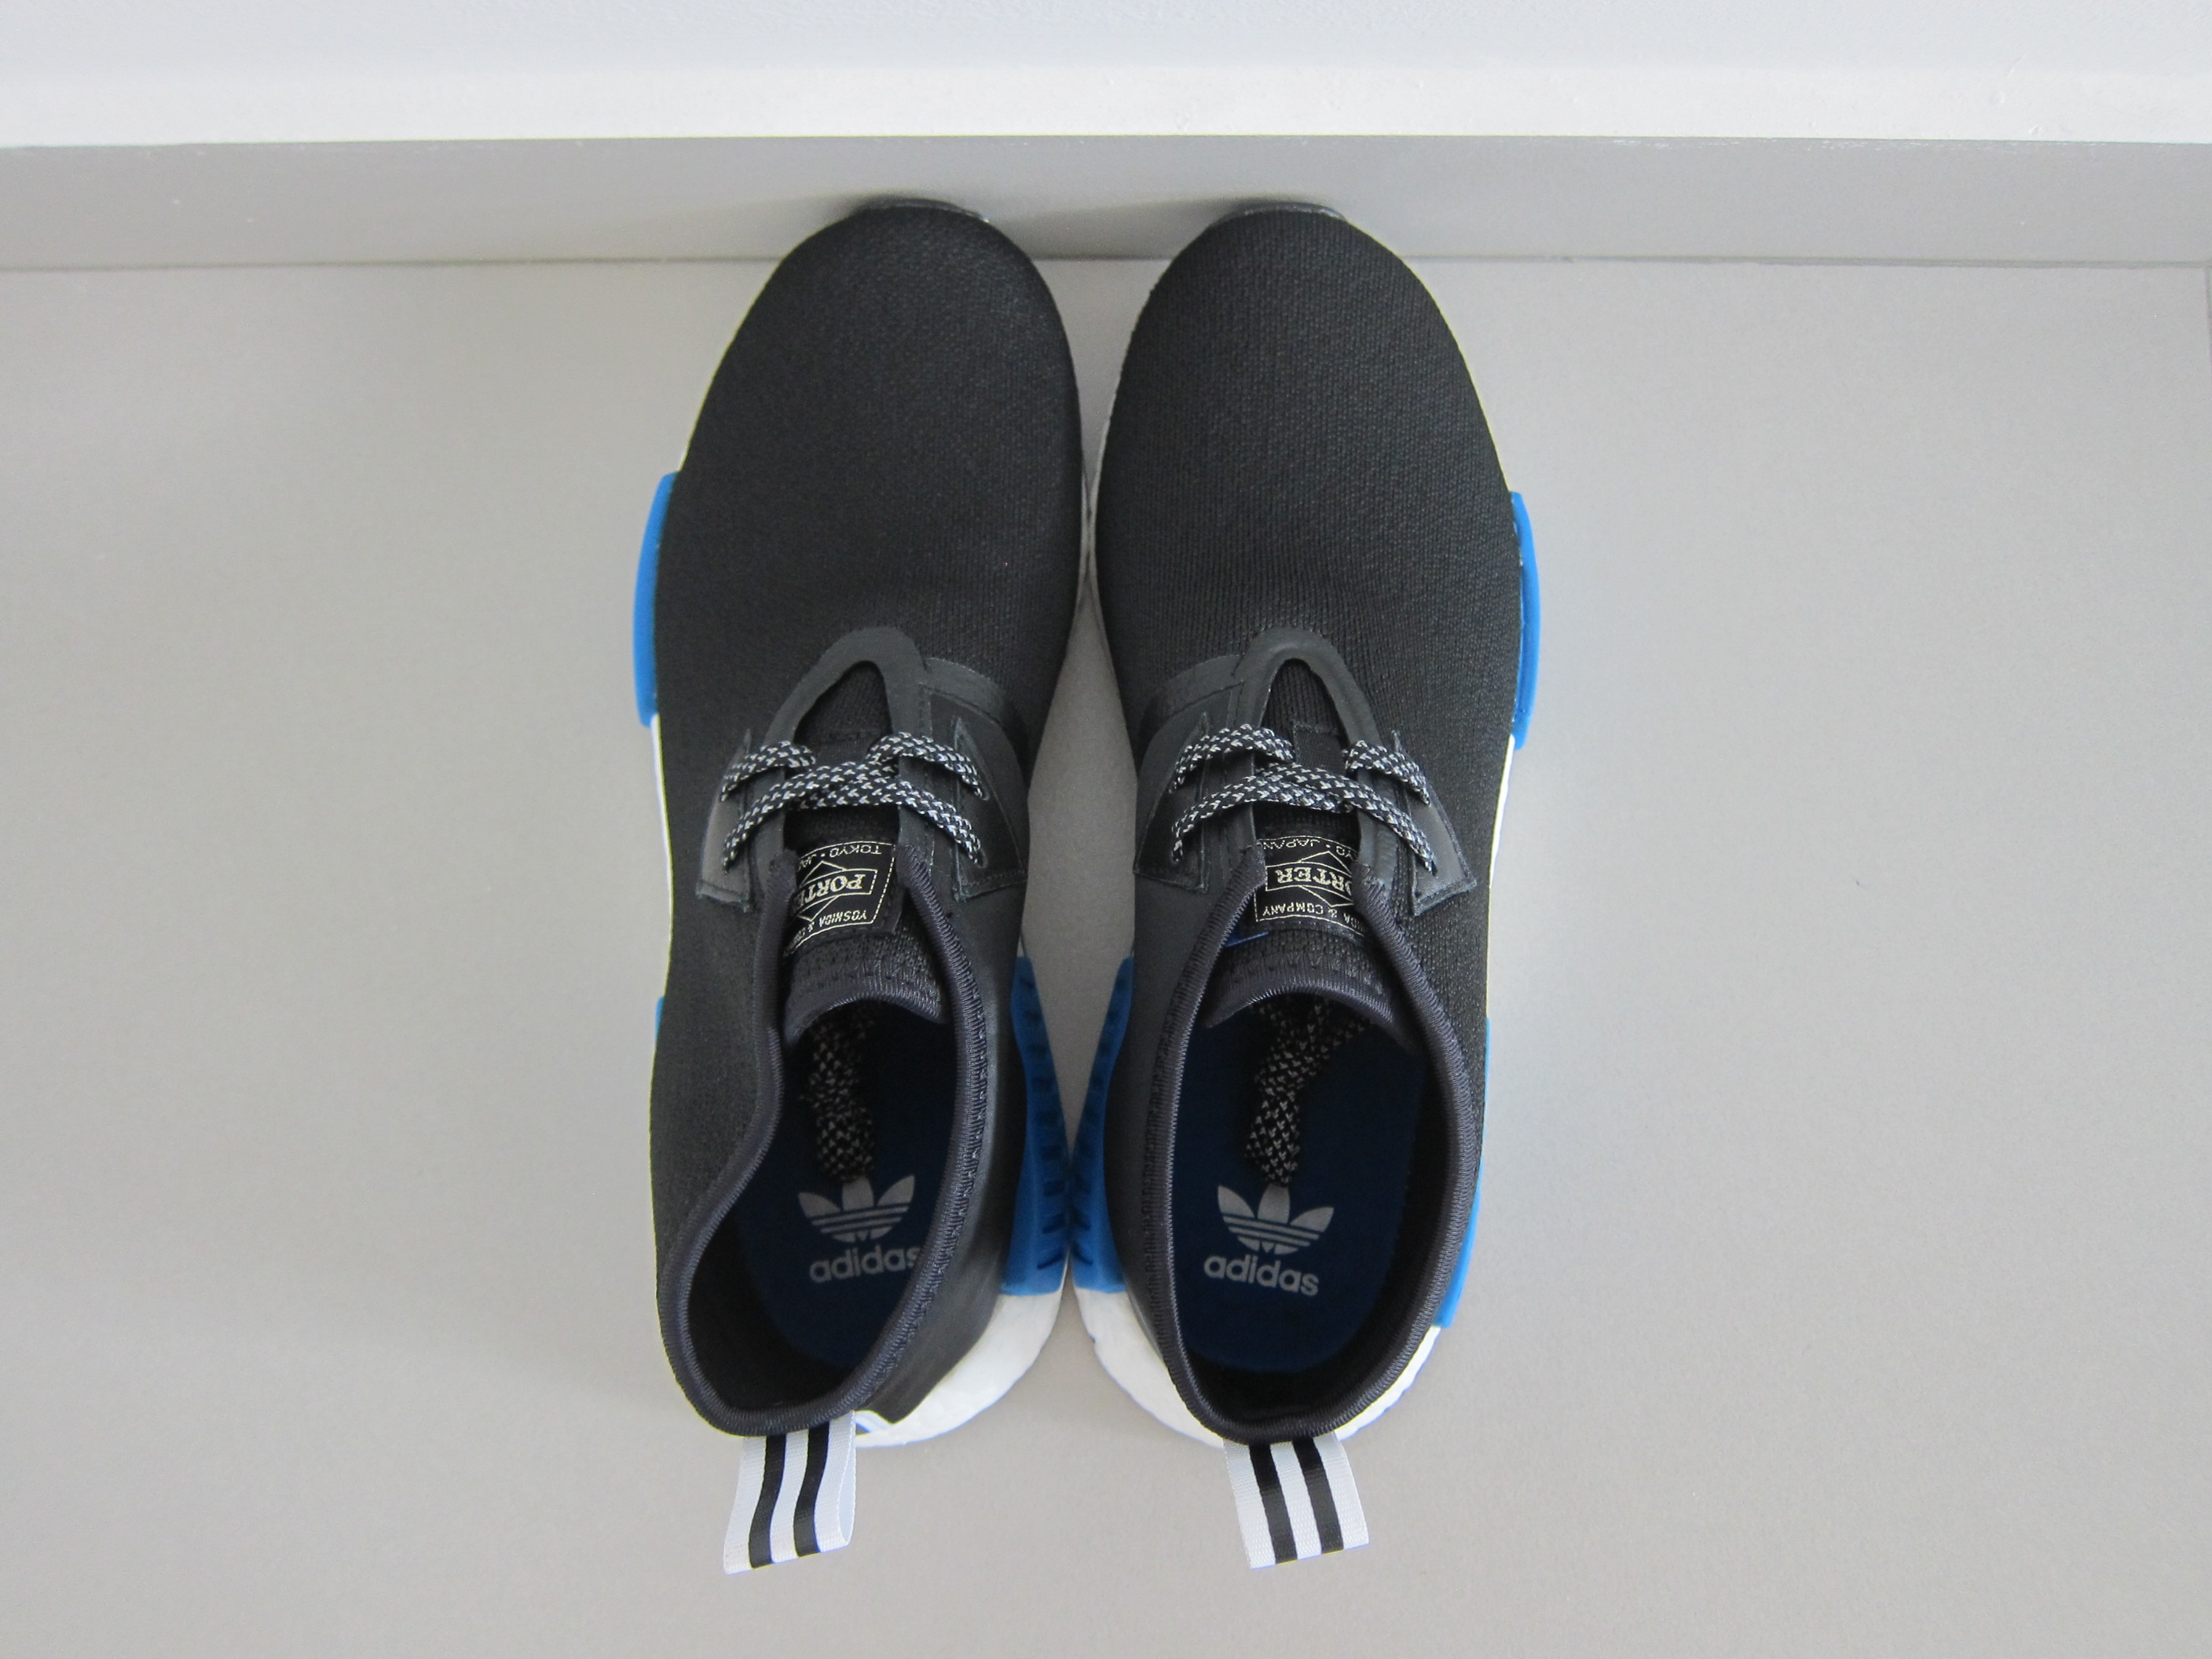 adidas porter A wide selection of adidas men's shoes from the best brands on yoox shop online: delivery in 48 hours and secure payments.